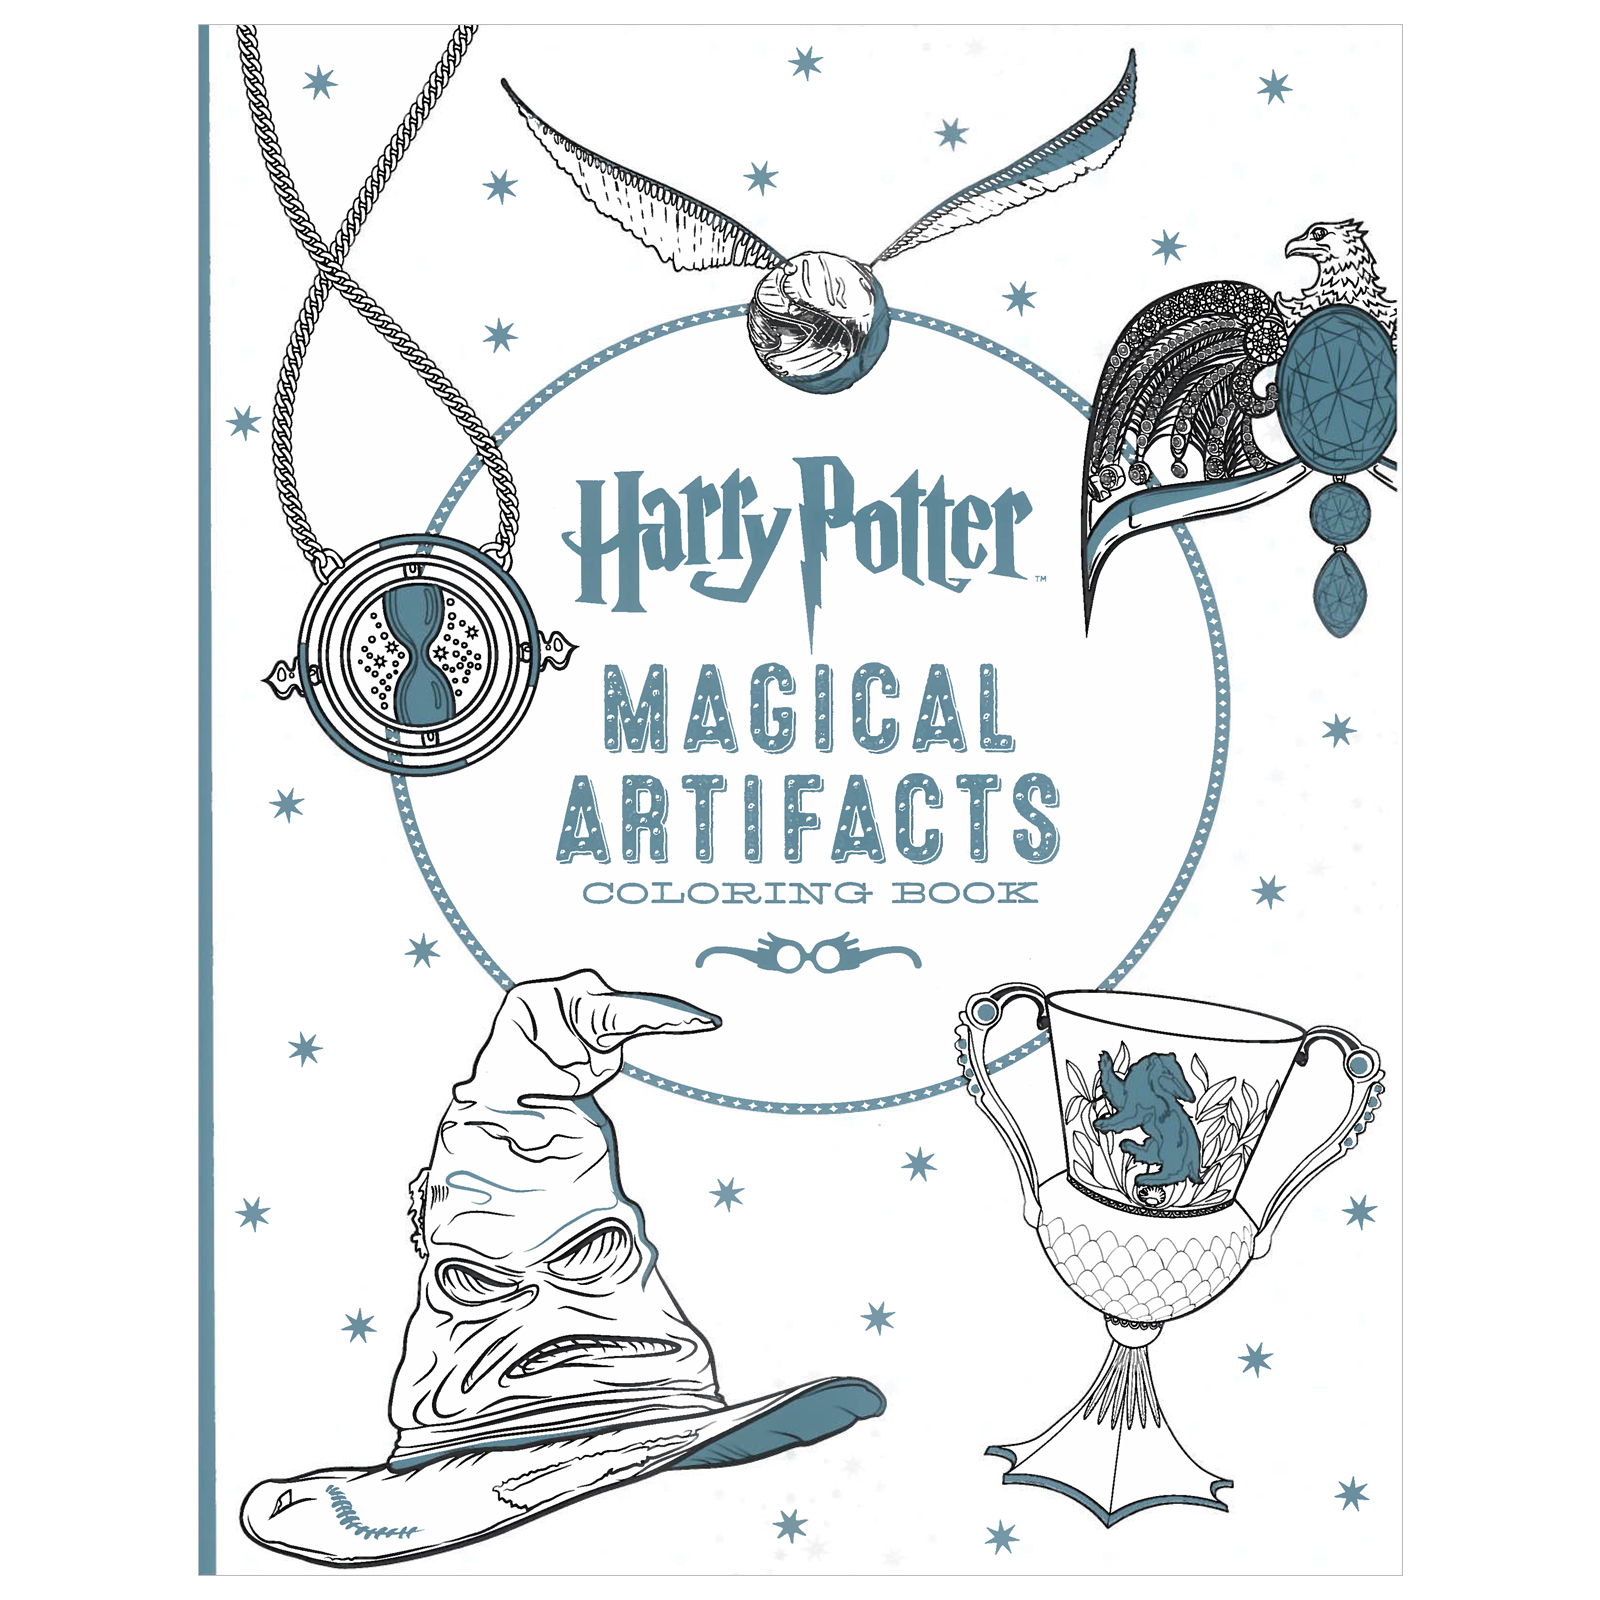 Harry Potter Artifacts Coloring Book Free Time At Michaels Doctor